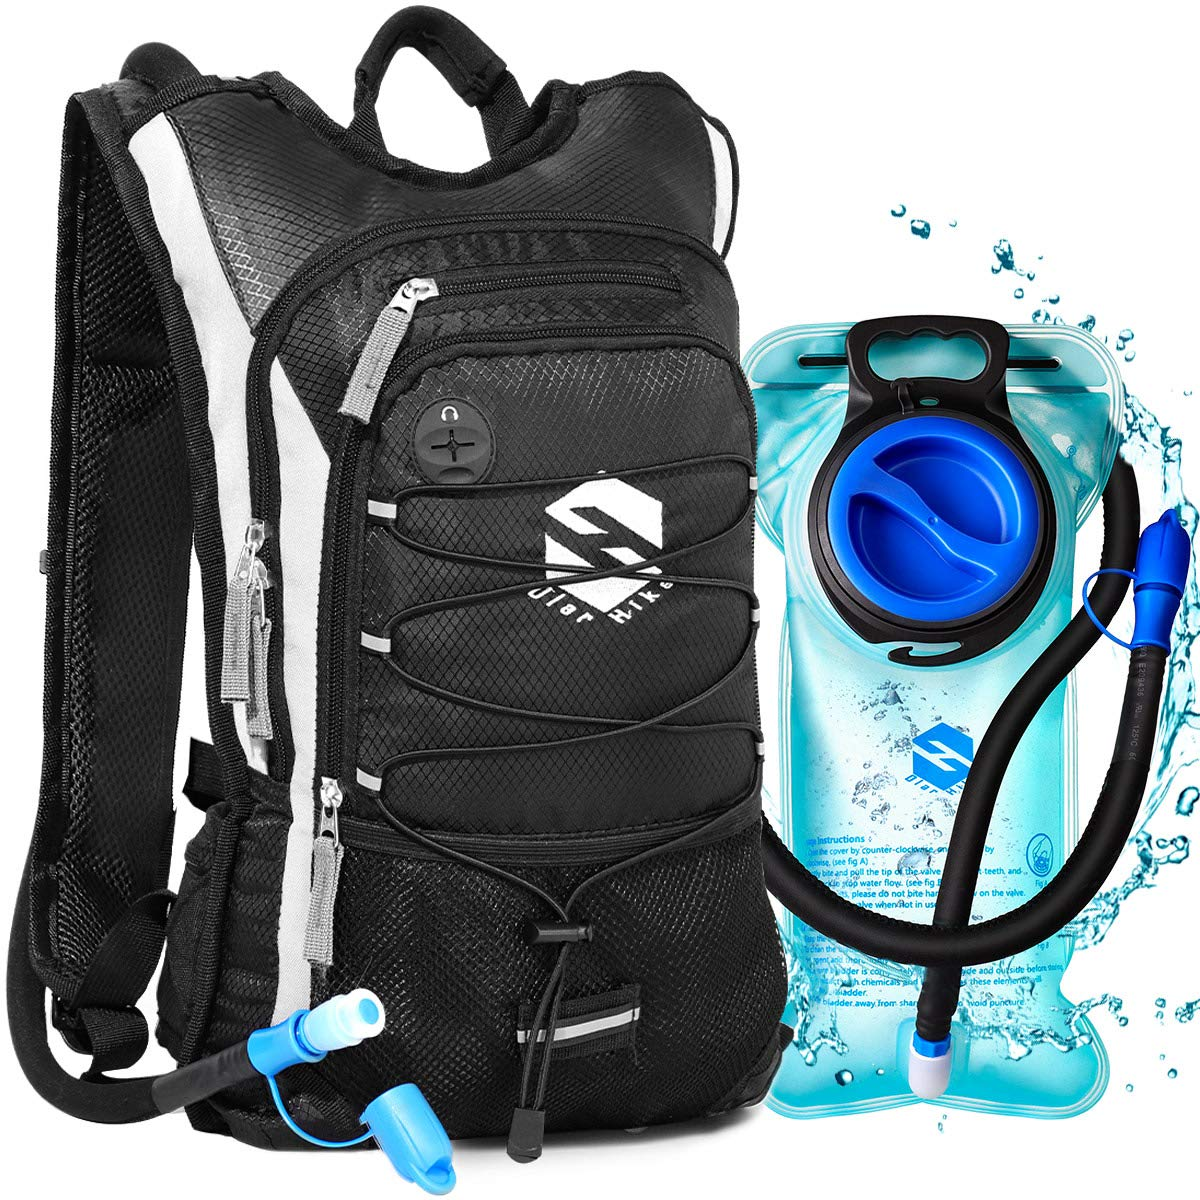 OlarHike Hydration Backpack Pack with 2L BPA Free Leak-Proof Bladder, Insulated Water Backpack for Hiking,Biking,Running,Camping by OlarHike